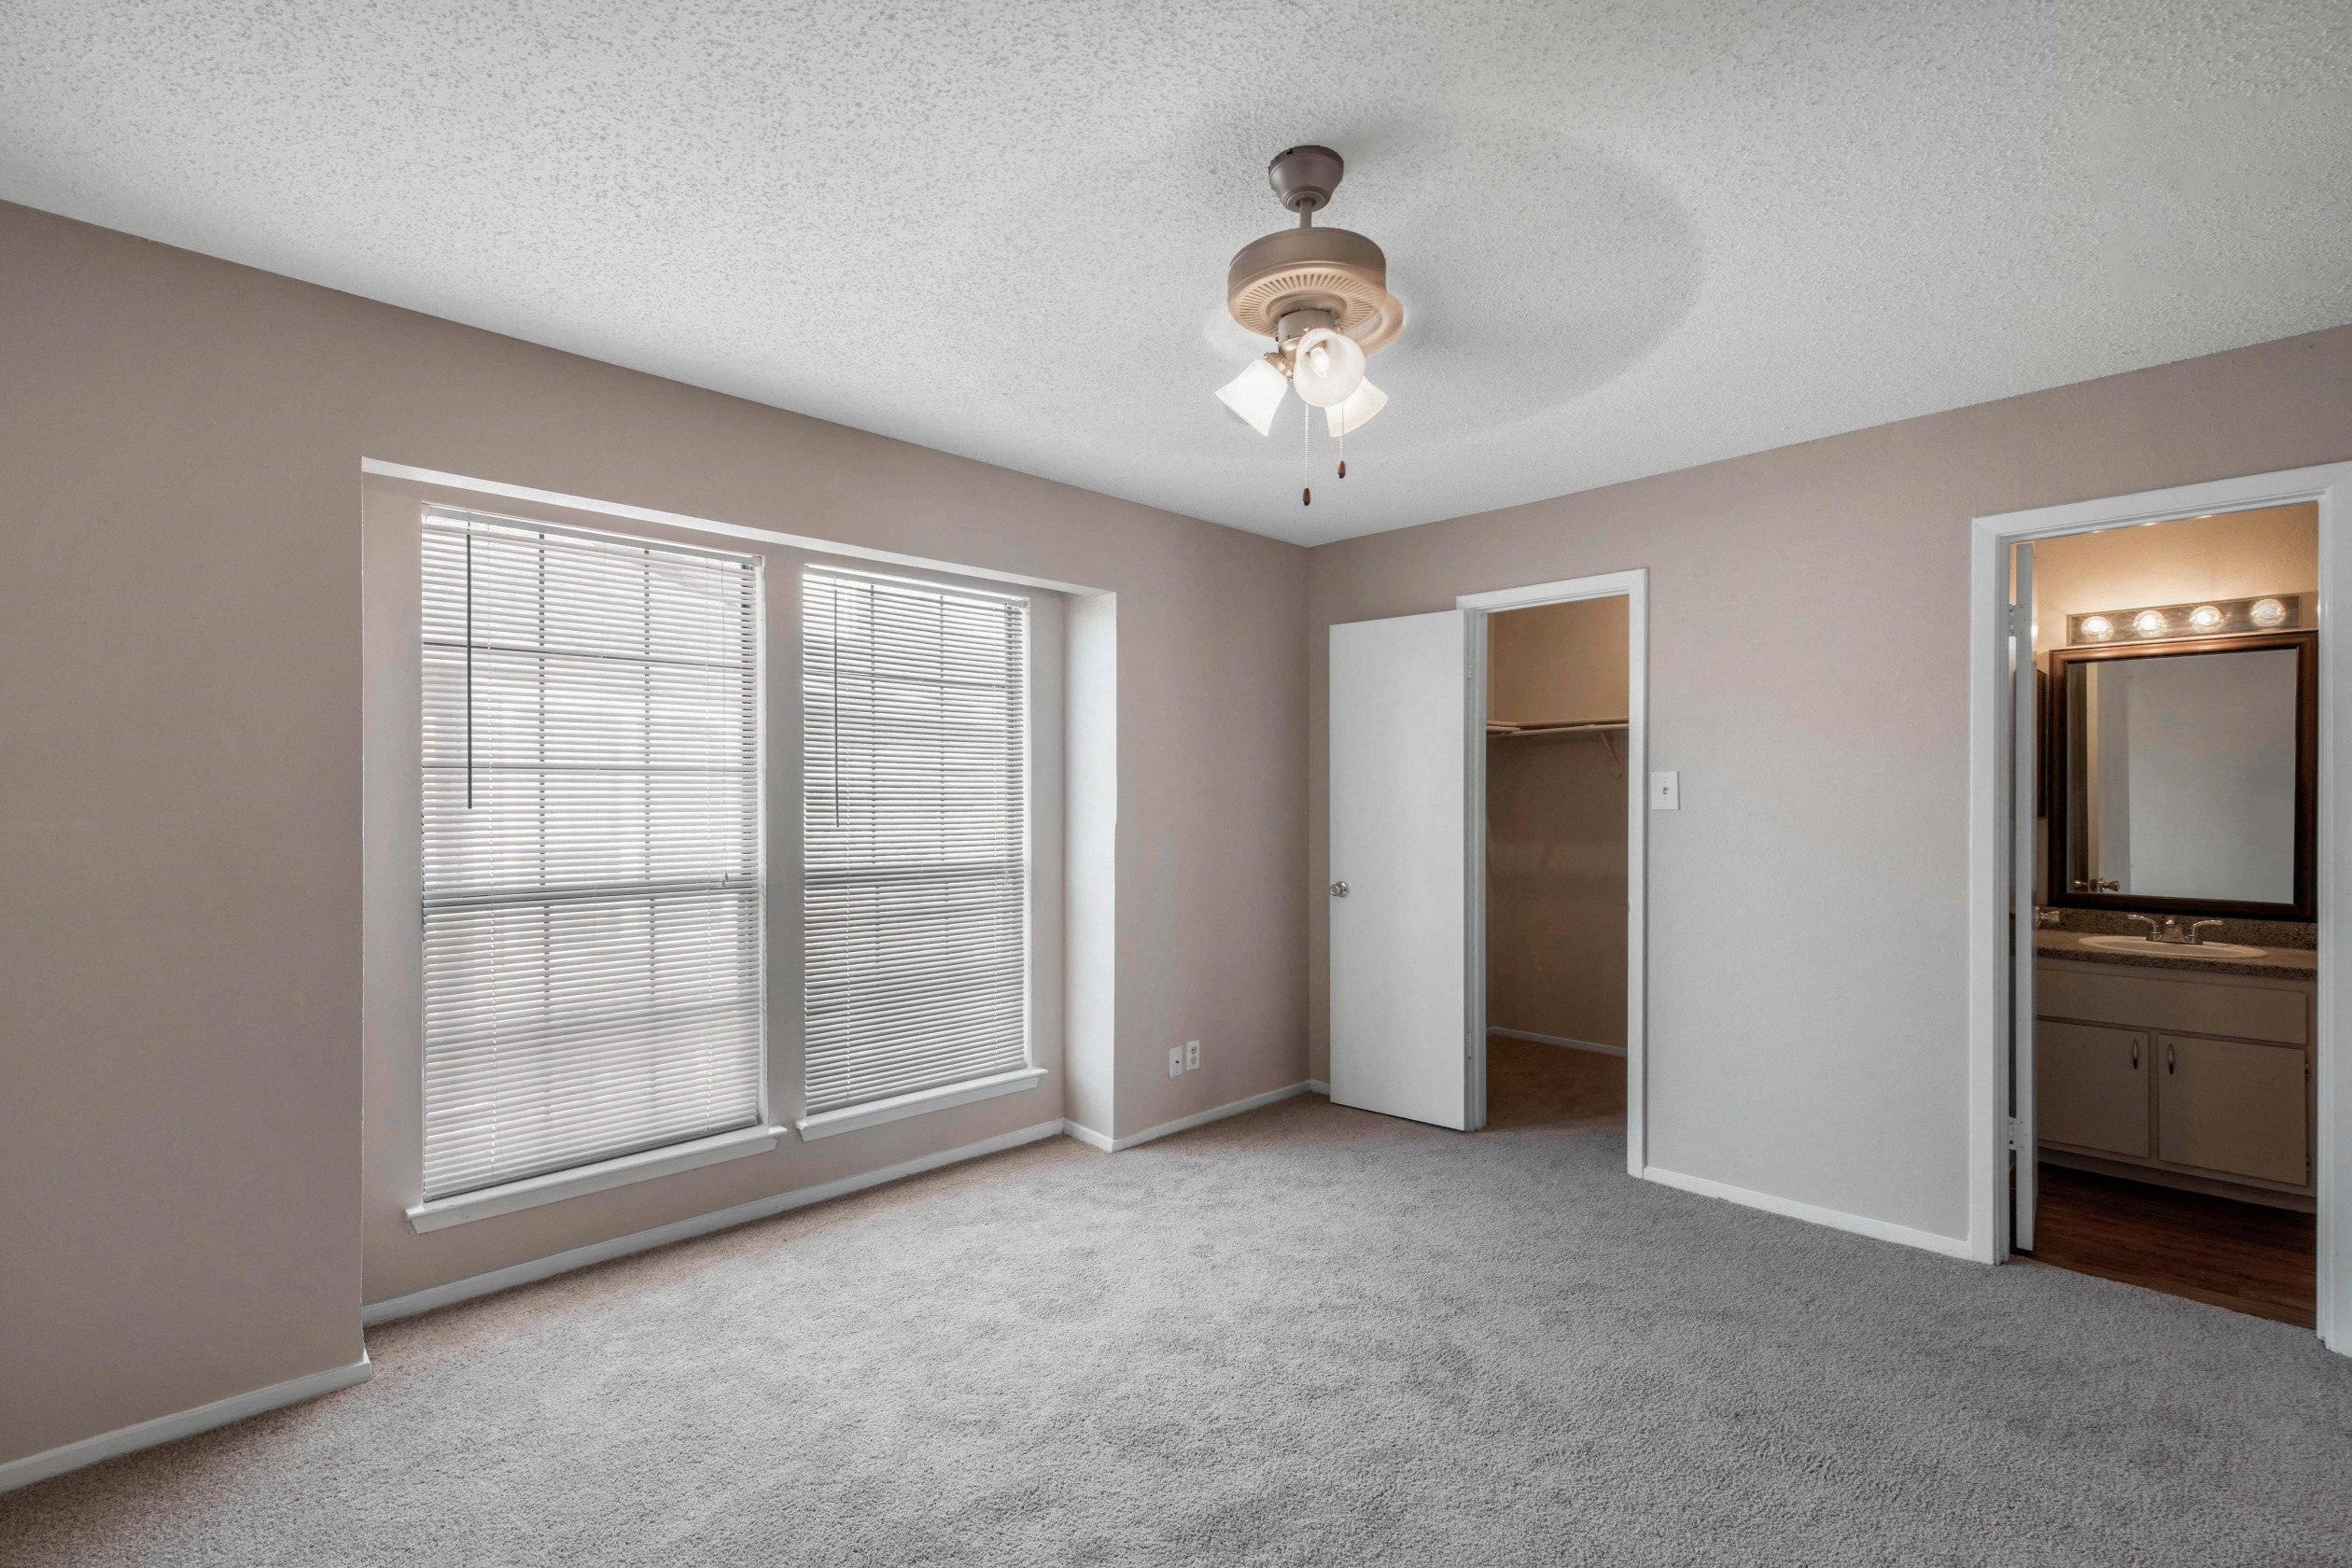 Wall to wall carpet, ceiling fan, en-suite bathroom,  spacious walk in closet, and blush colored walls